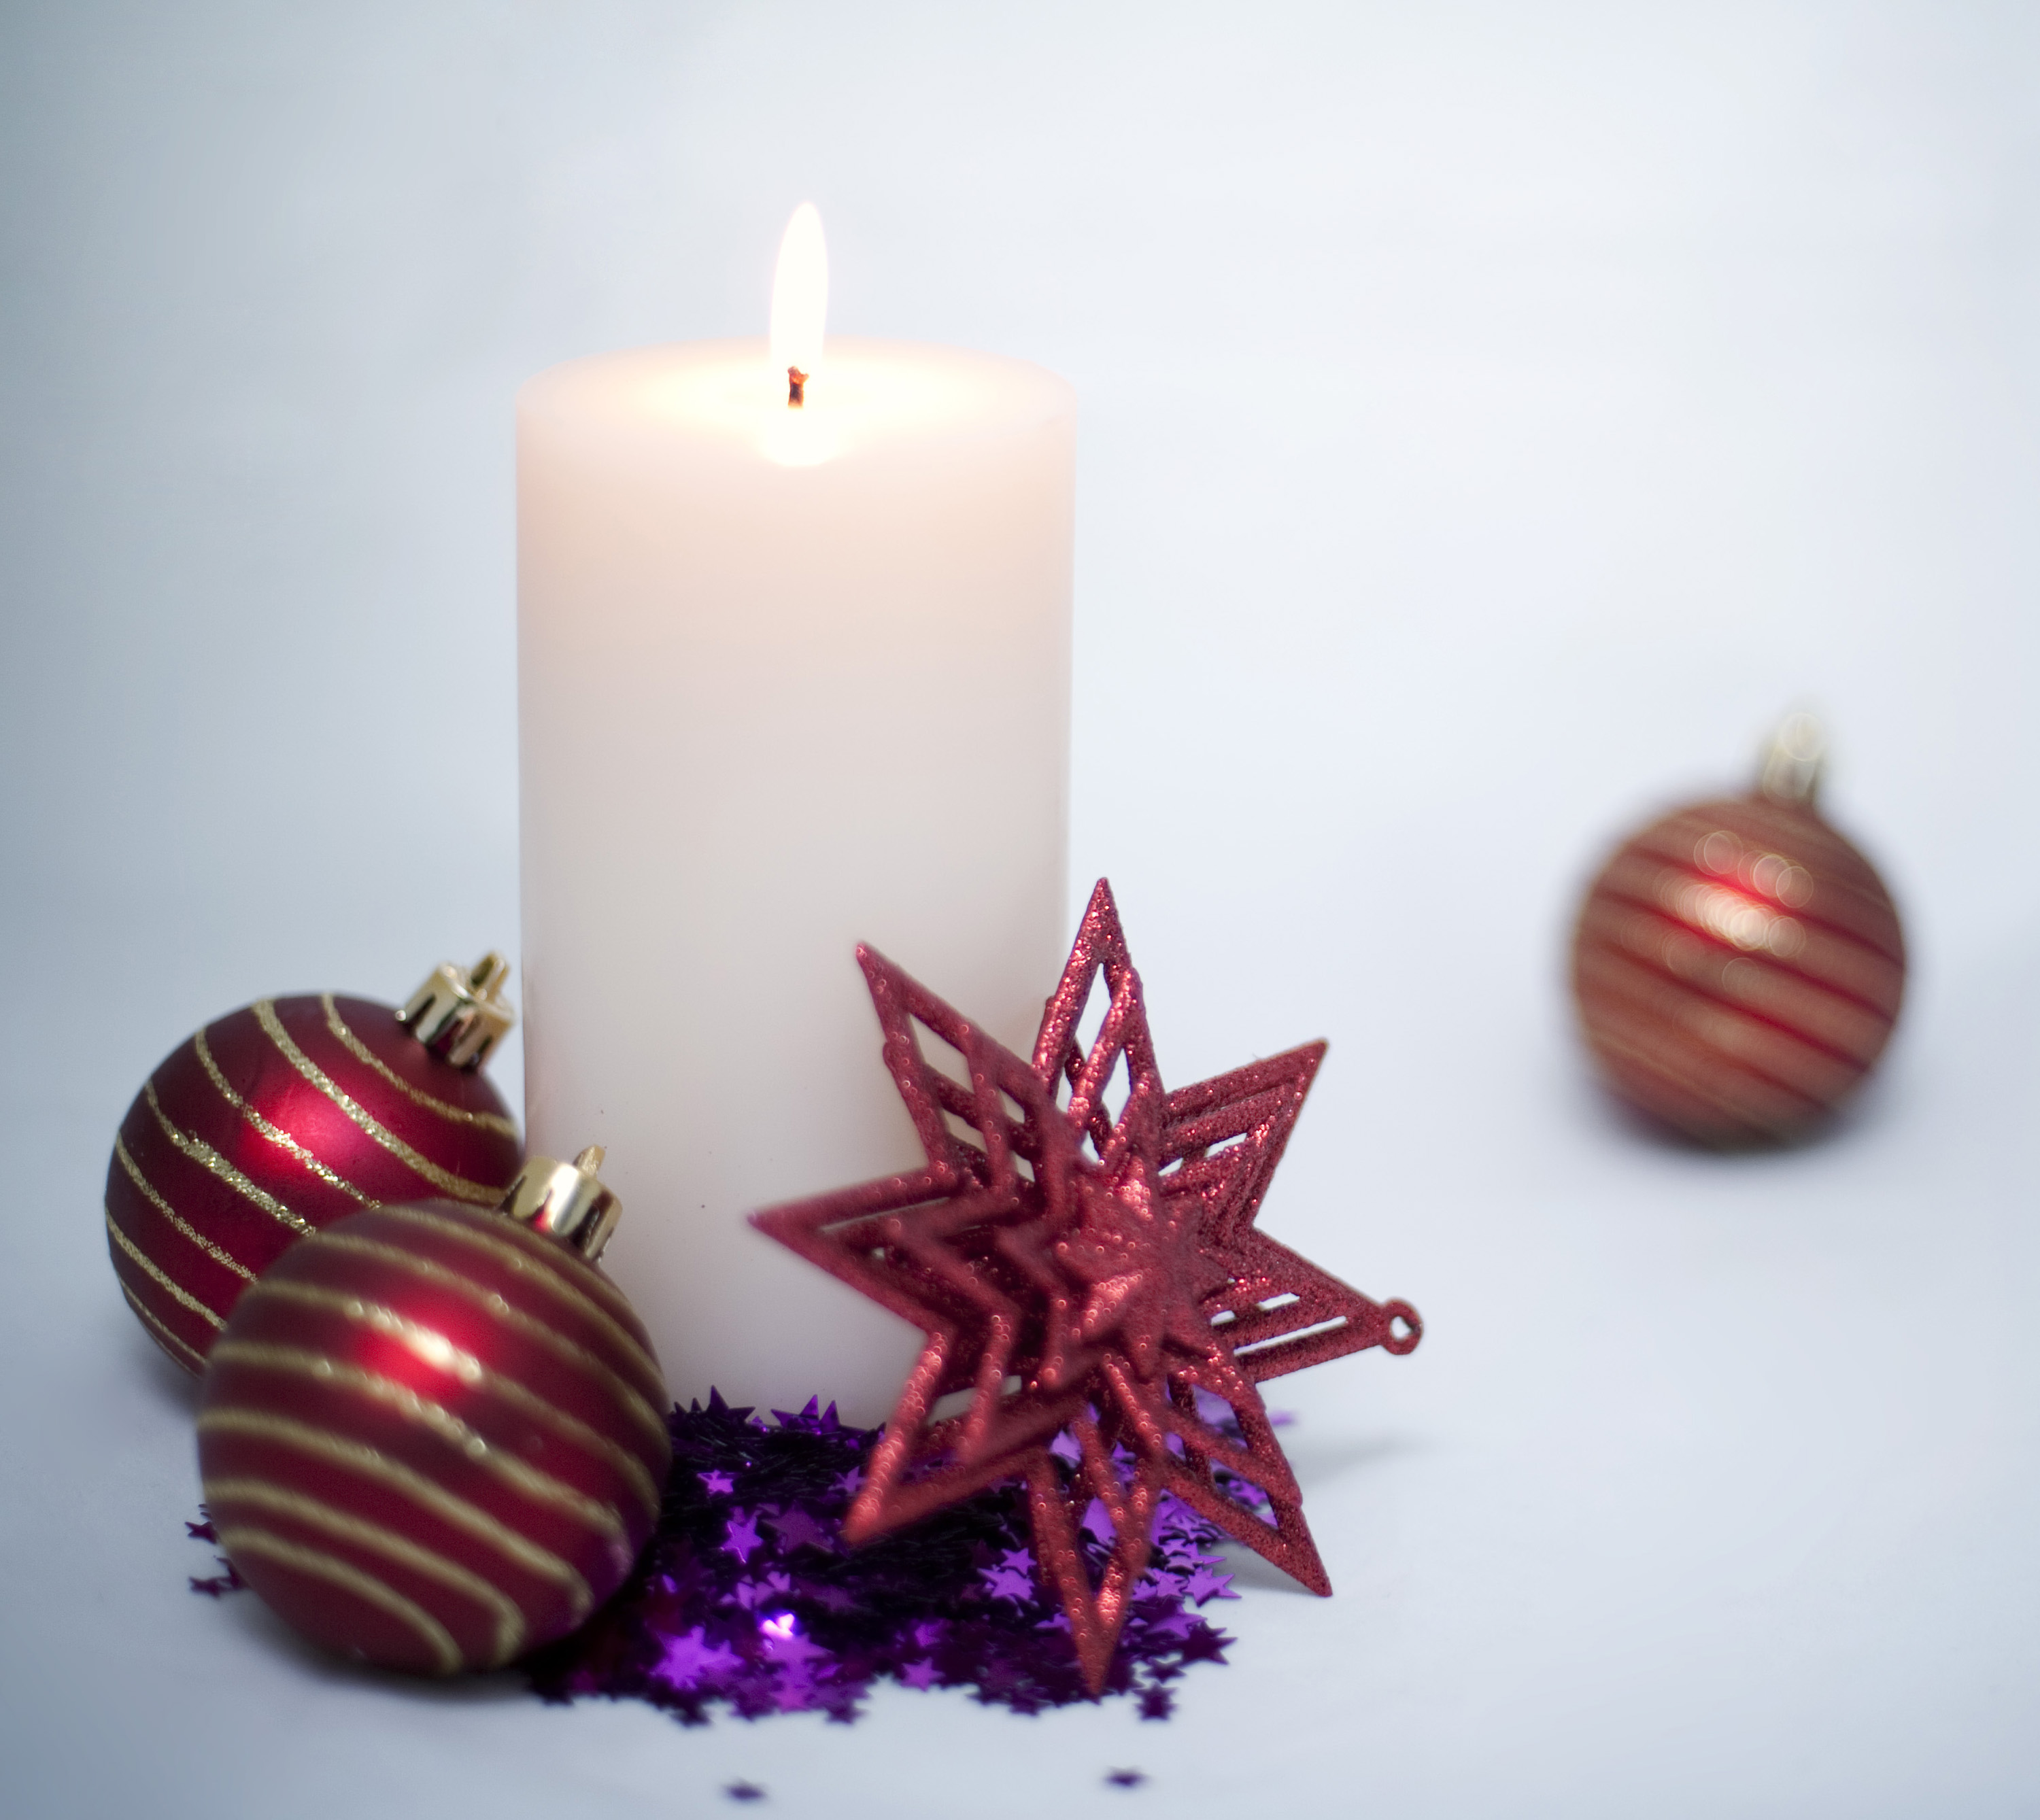 free stock photo 3591 white festive candle freeimageslive